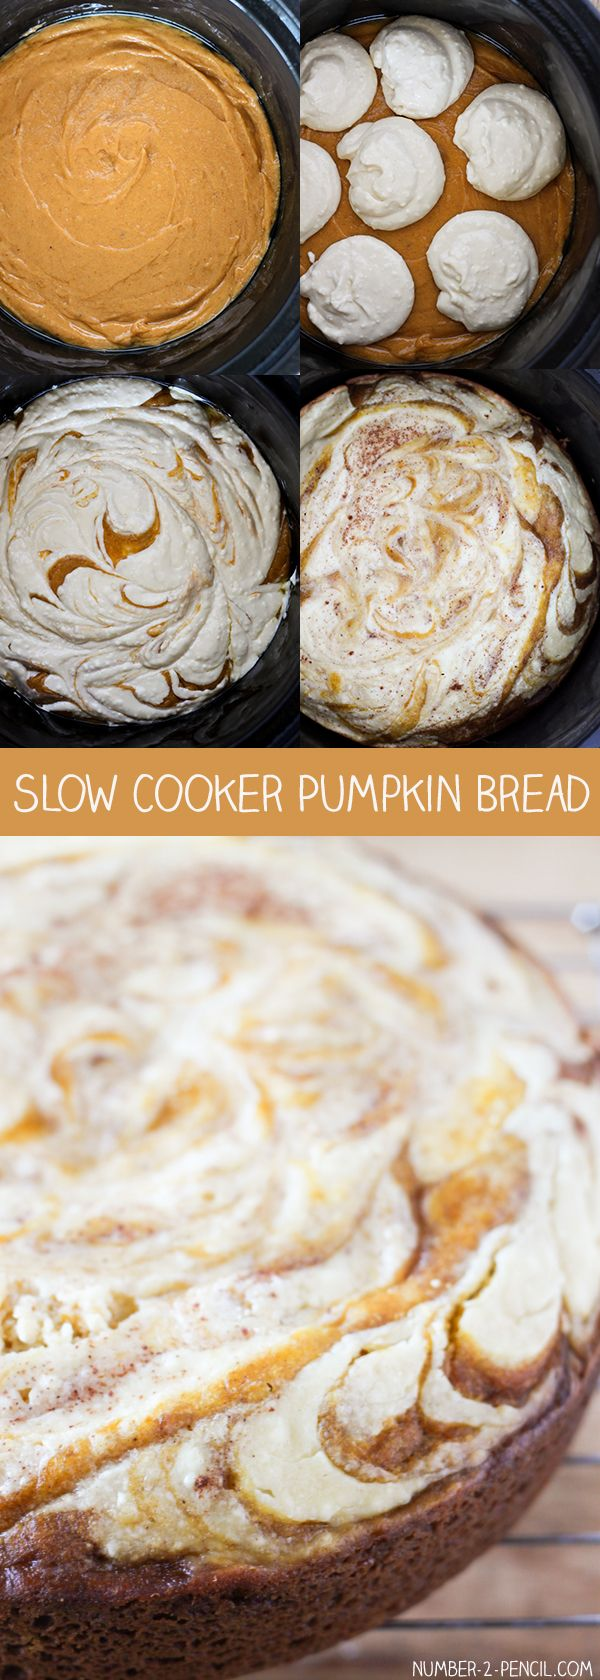 Slow Cooker Cream Cheese Swirl Pumpkin Bread - homemade pumpkin bread with a decadent cream cheese swirl baked right in the slow cooker!